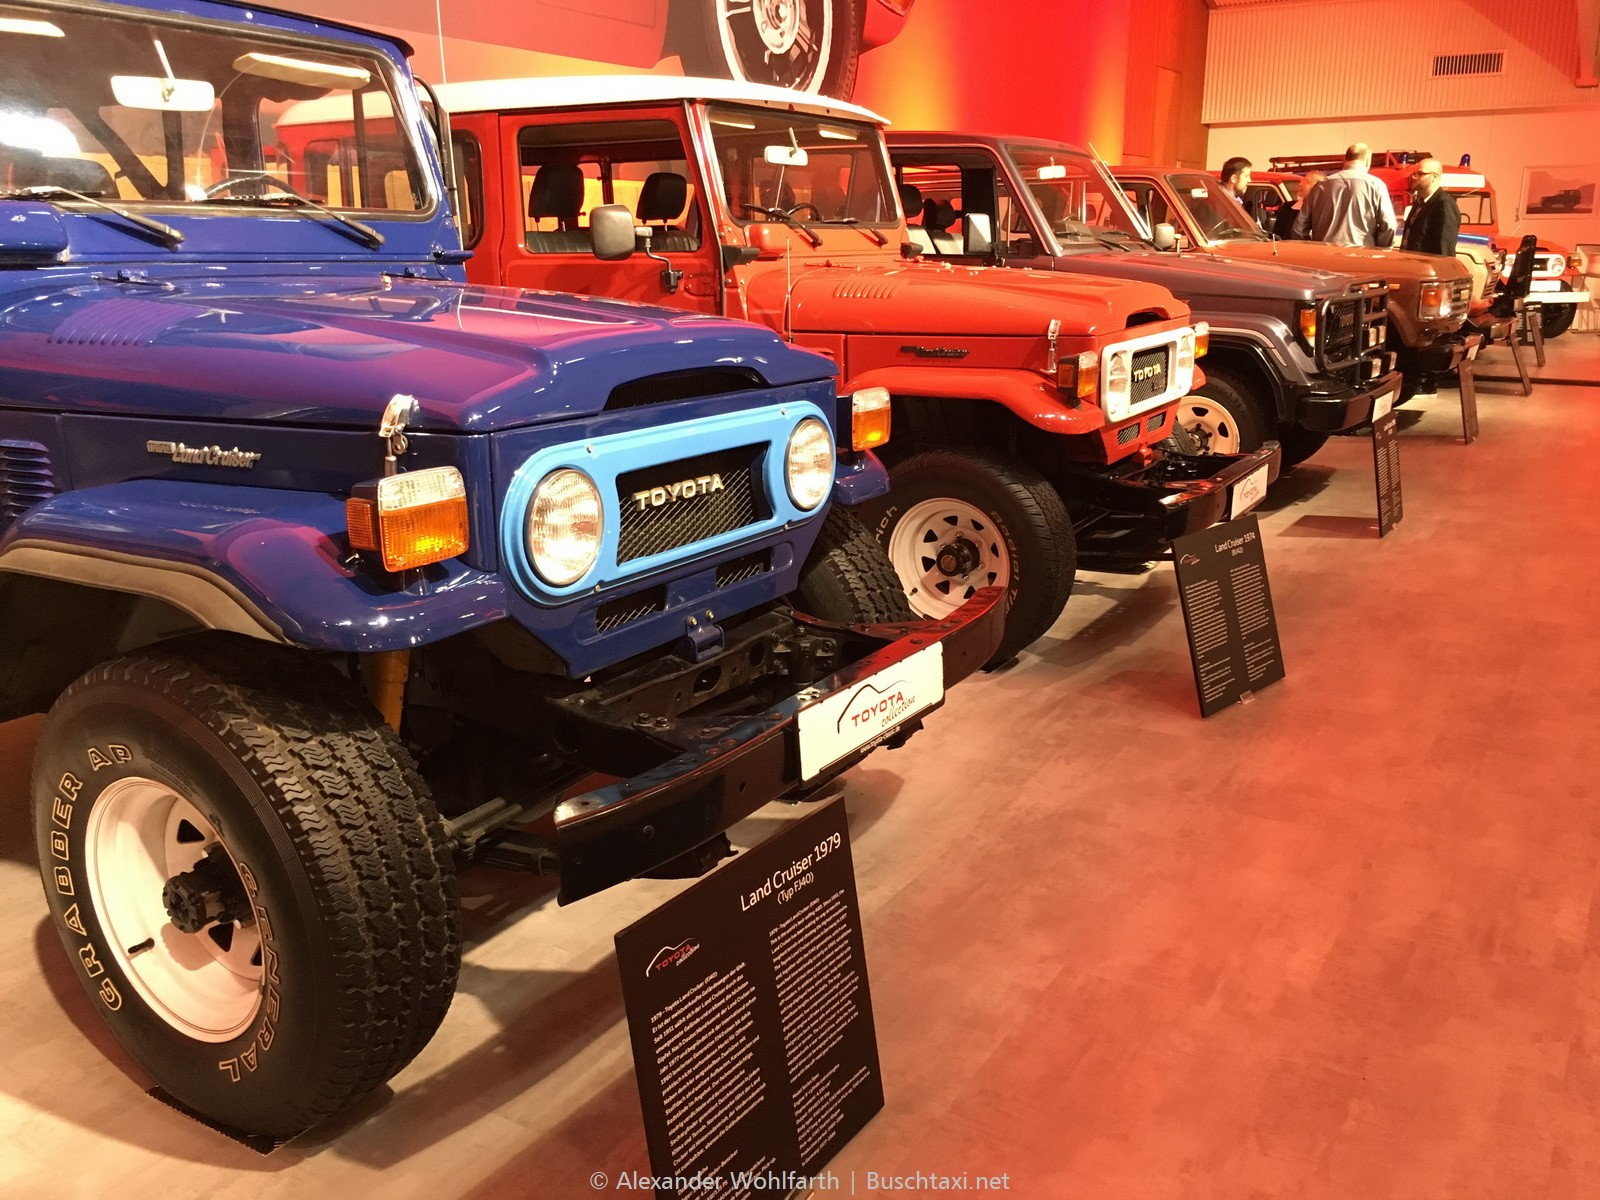 2017-11-23 toyota collection 05